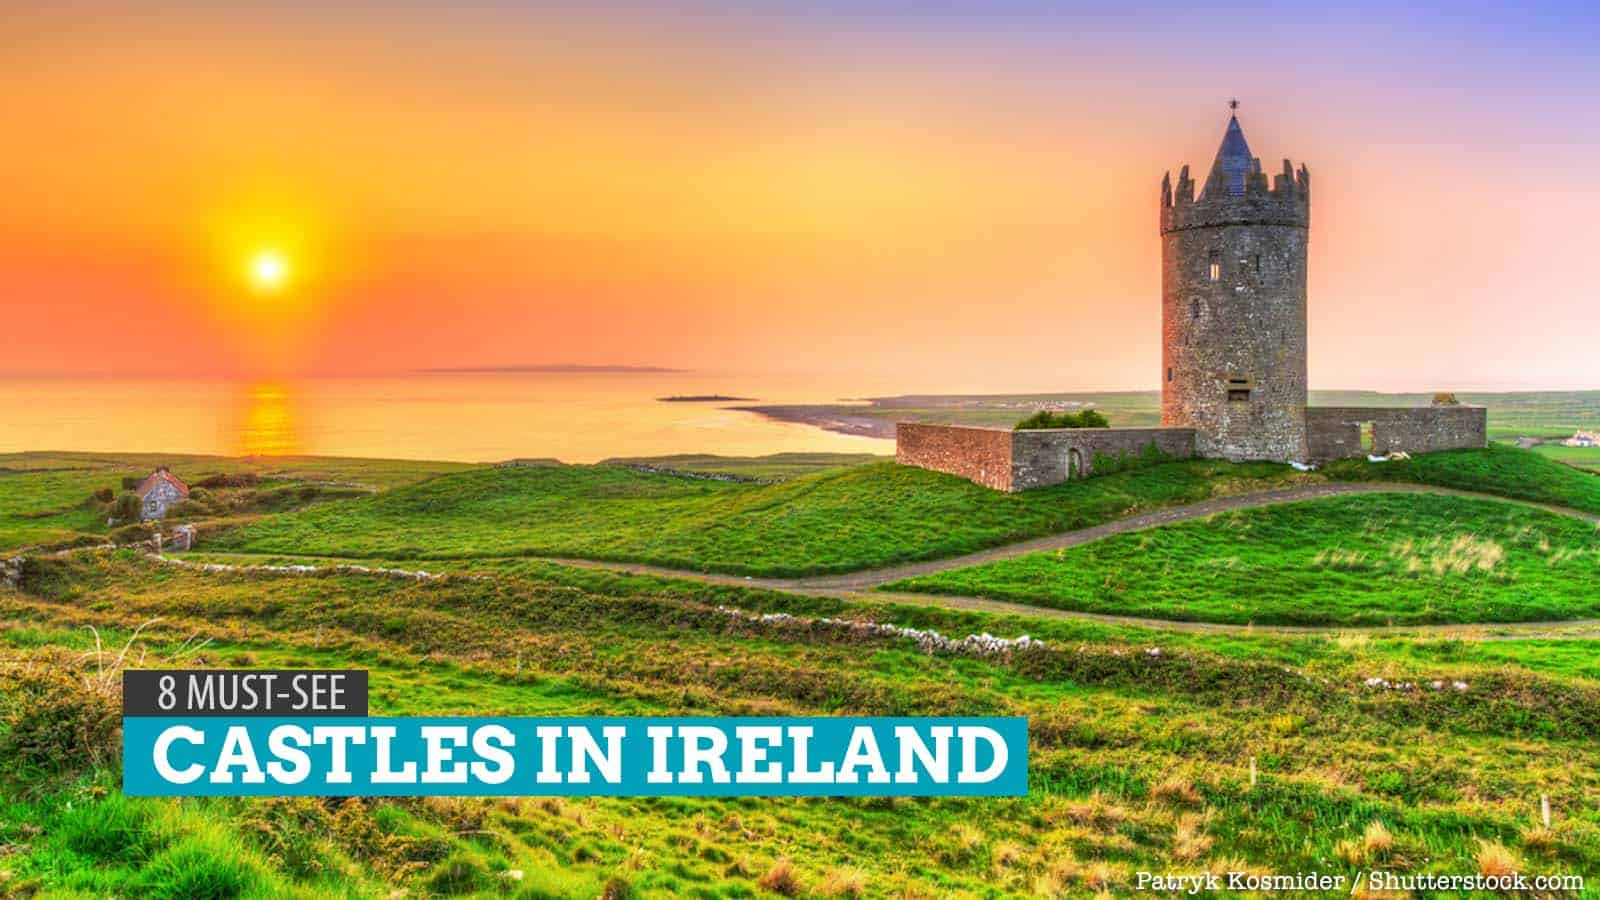 8 Must-See Castles in Ireland